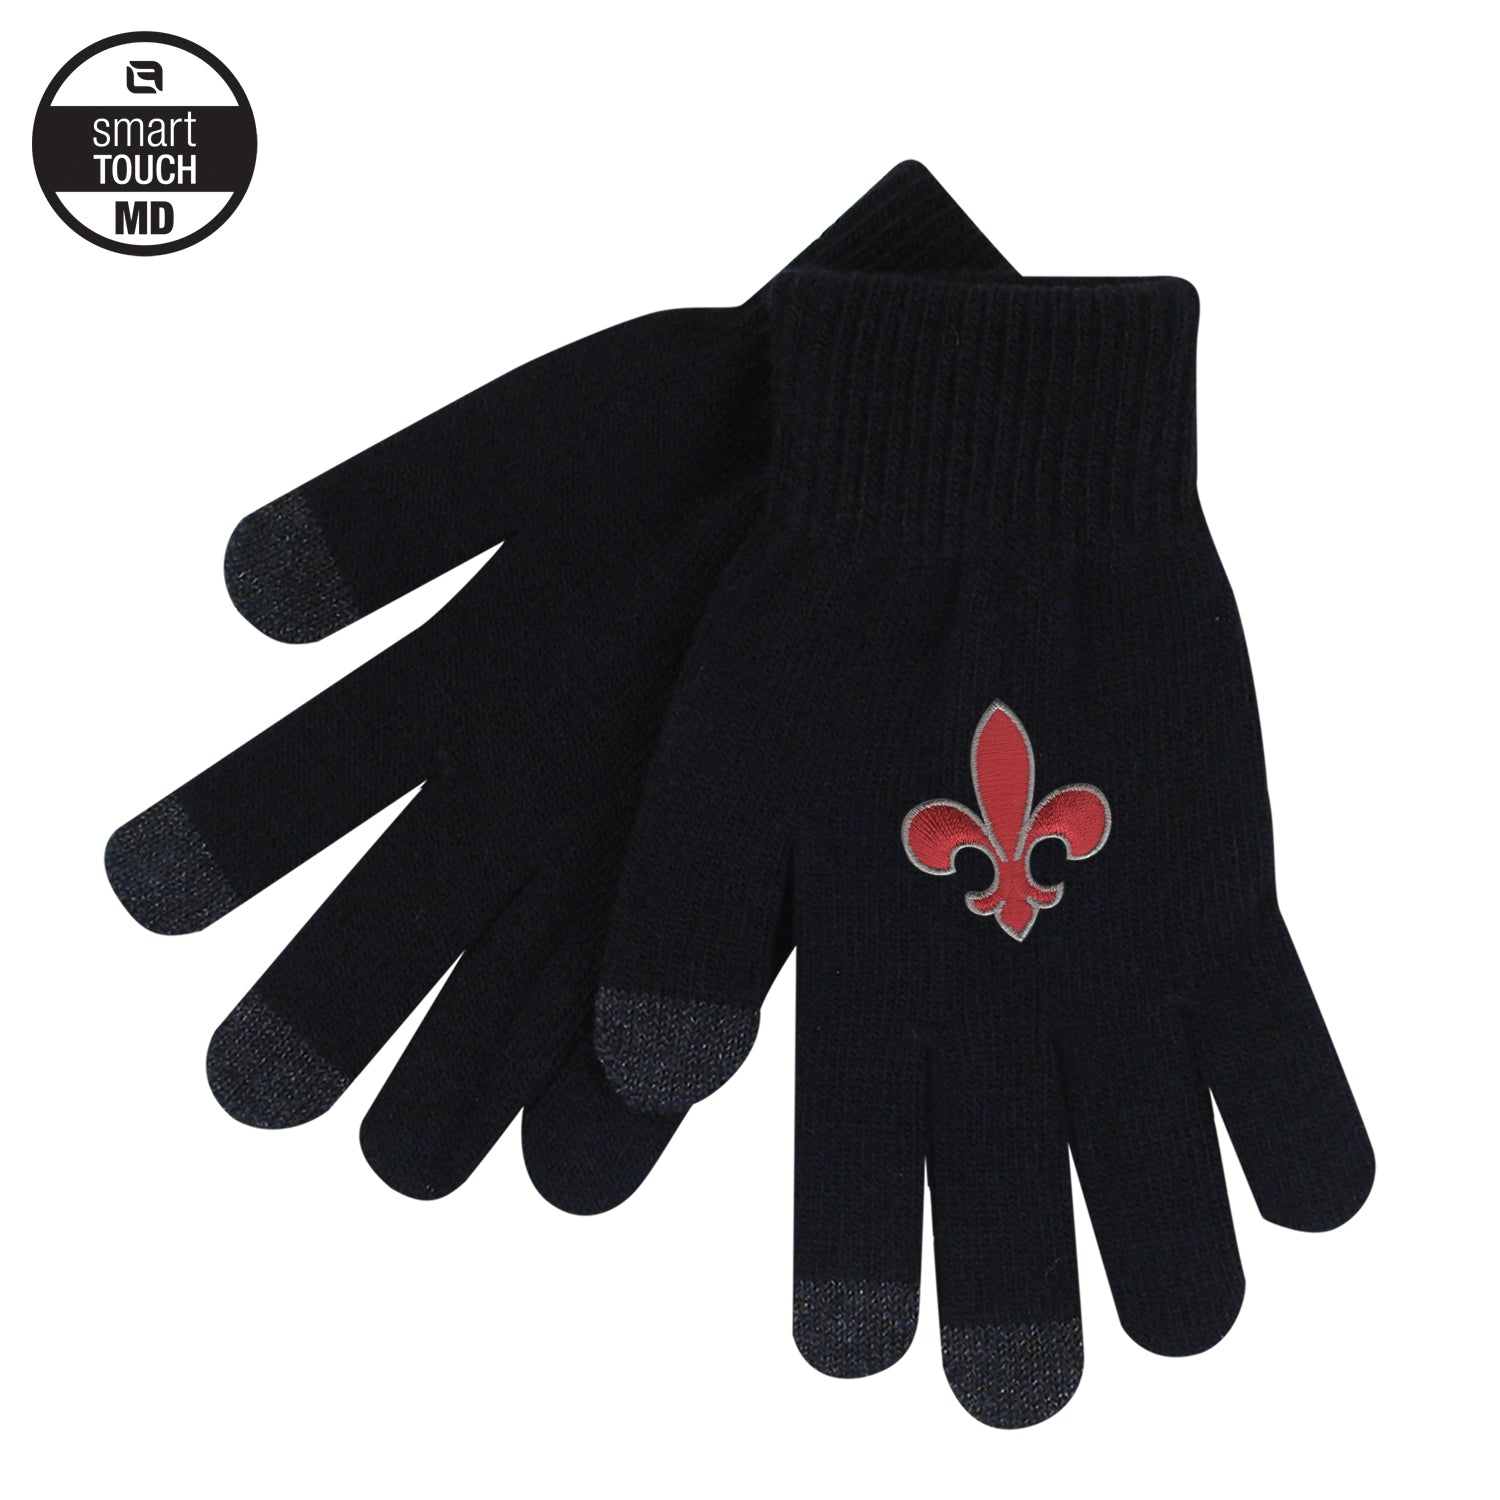 Adult iText Gloves